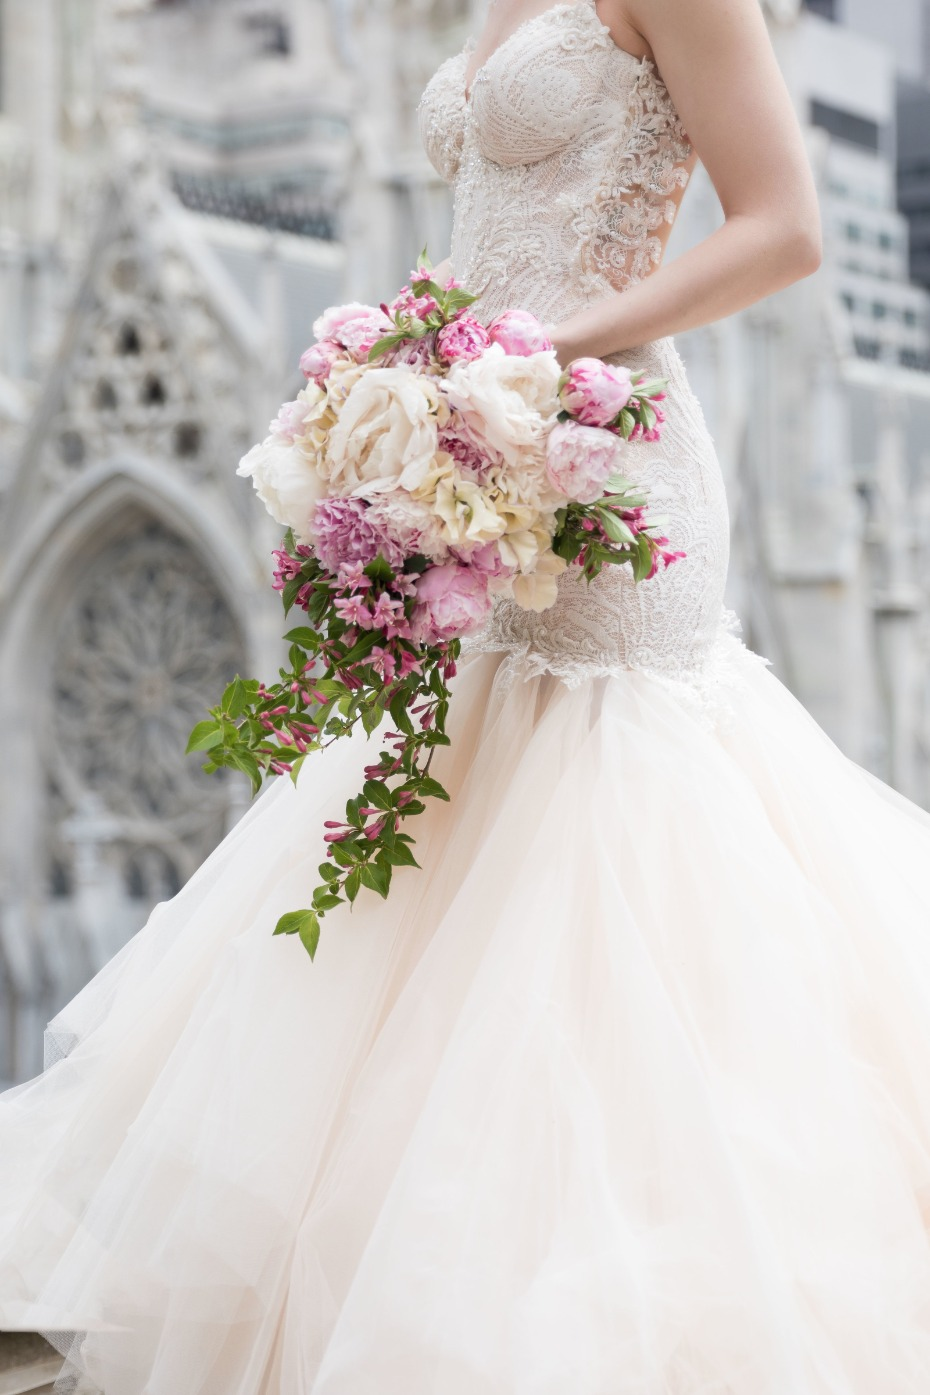 Beautiful blush and white floral bouquet